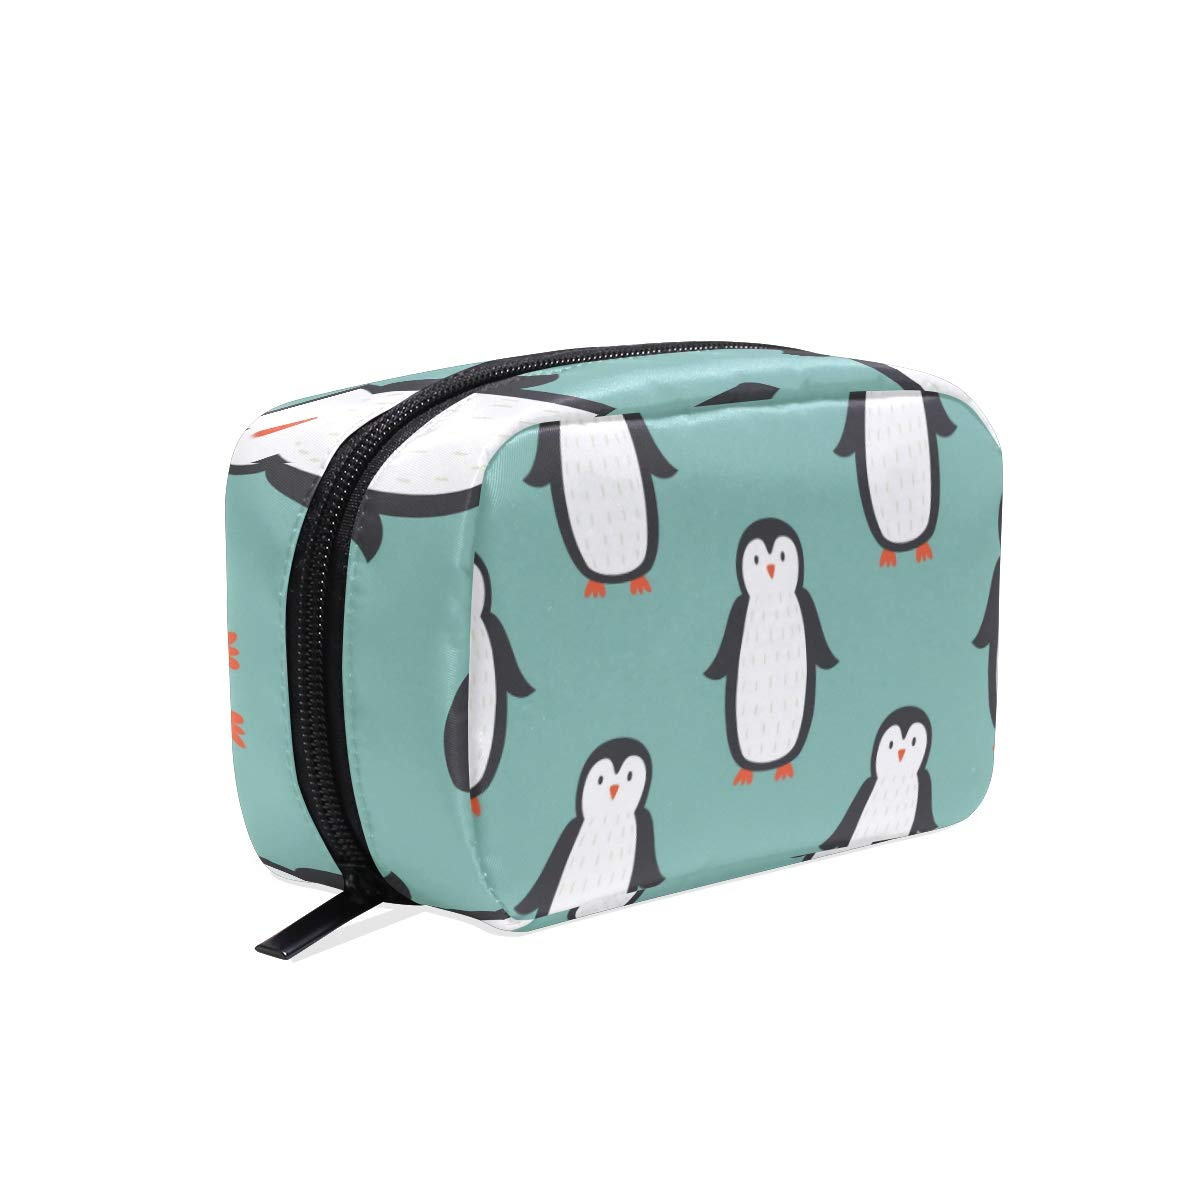 ZZAEO Cute Penguin Makeup Organizer Mini Printing Cosmetics Bag Travel Toiletry Bag Small Beauty Bag Travel Accessories for Teens Girls Women